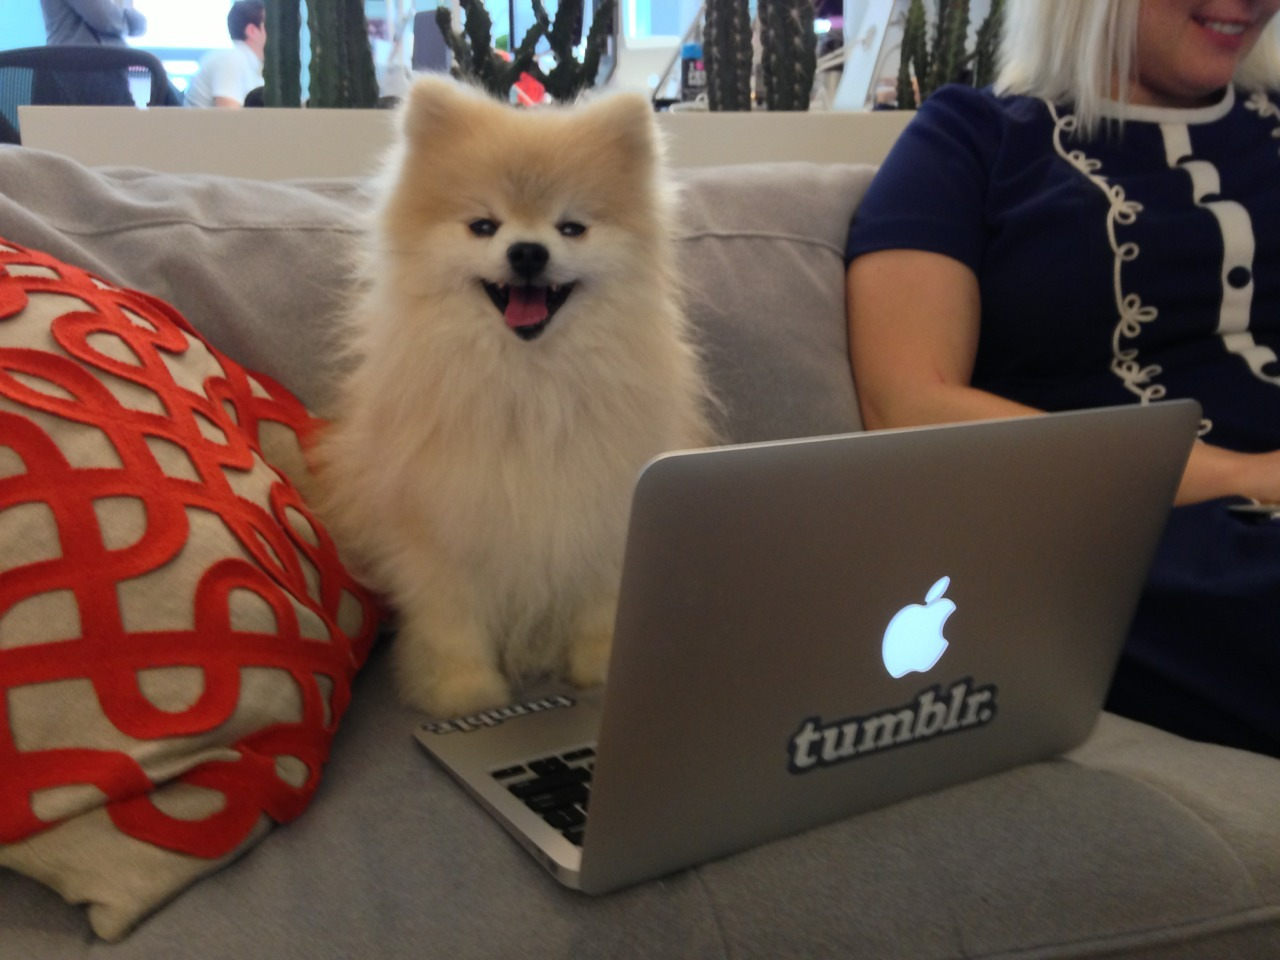 Working at Tumblr HQ!